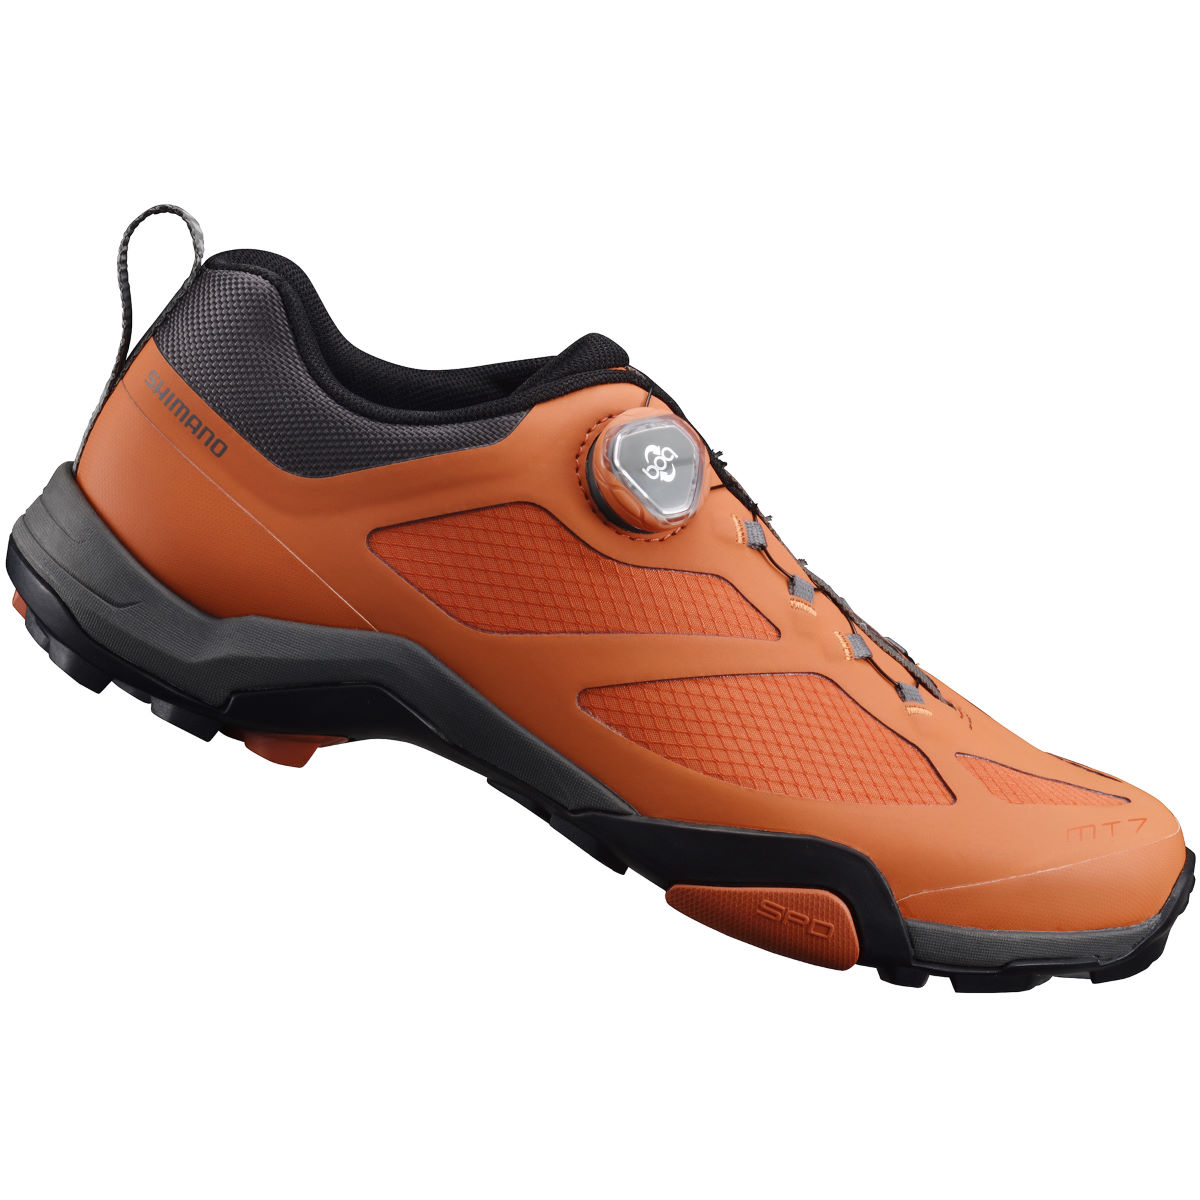 Shimano MT7 SPD Shoes - Zapatillas de ciclismo